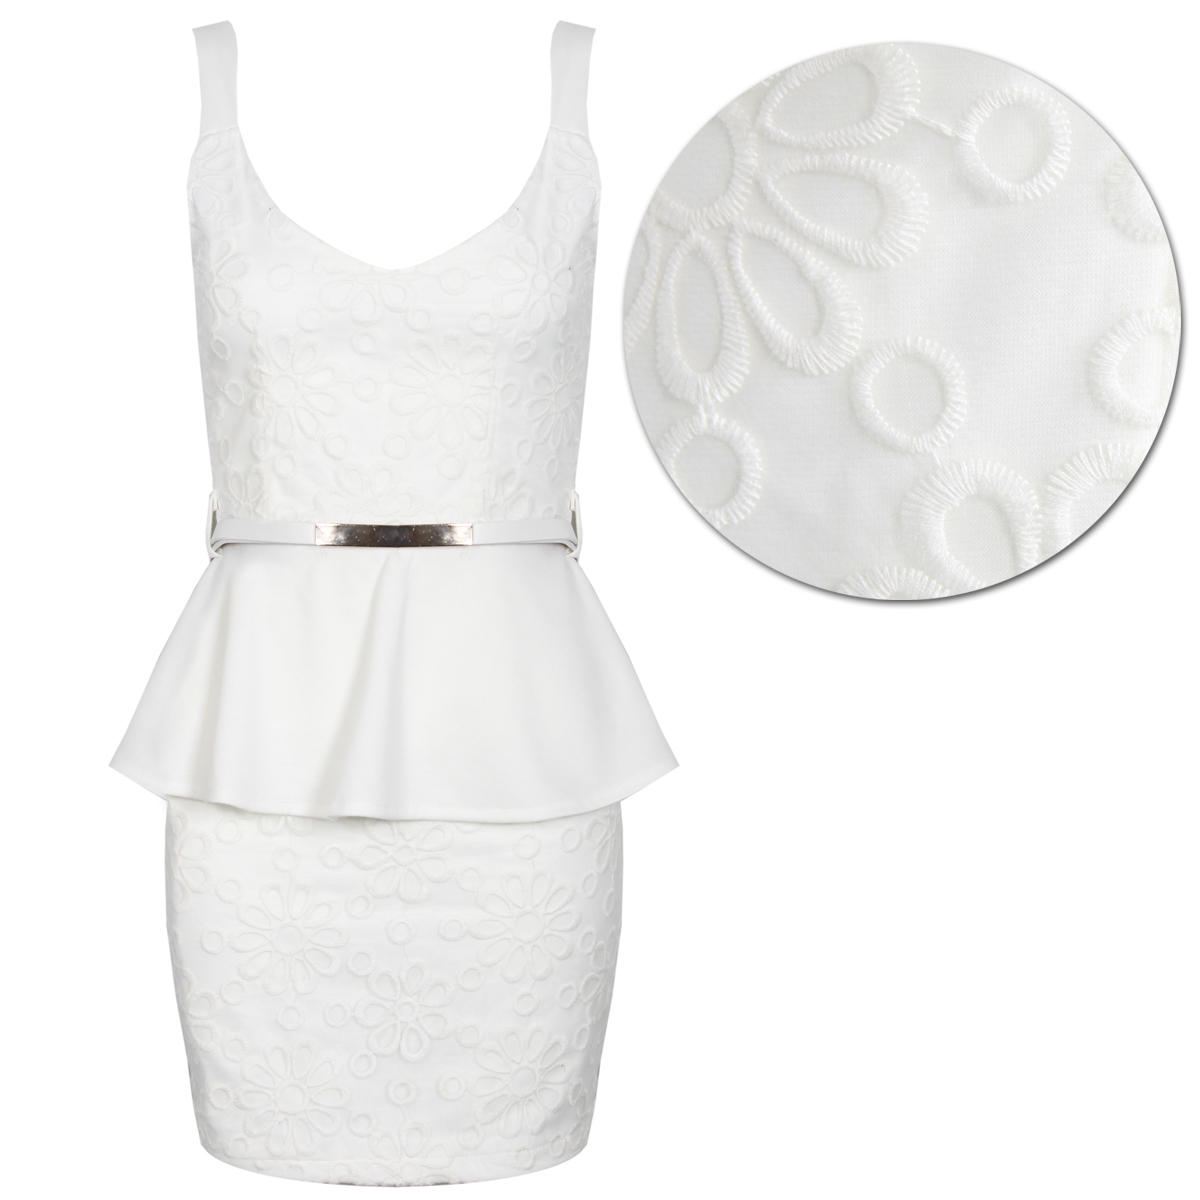 White Floral Embroidered Peplum Dress Preview